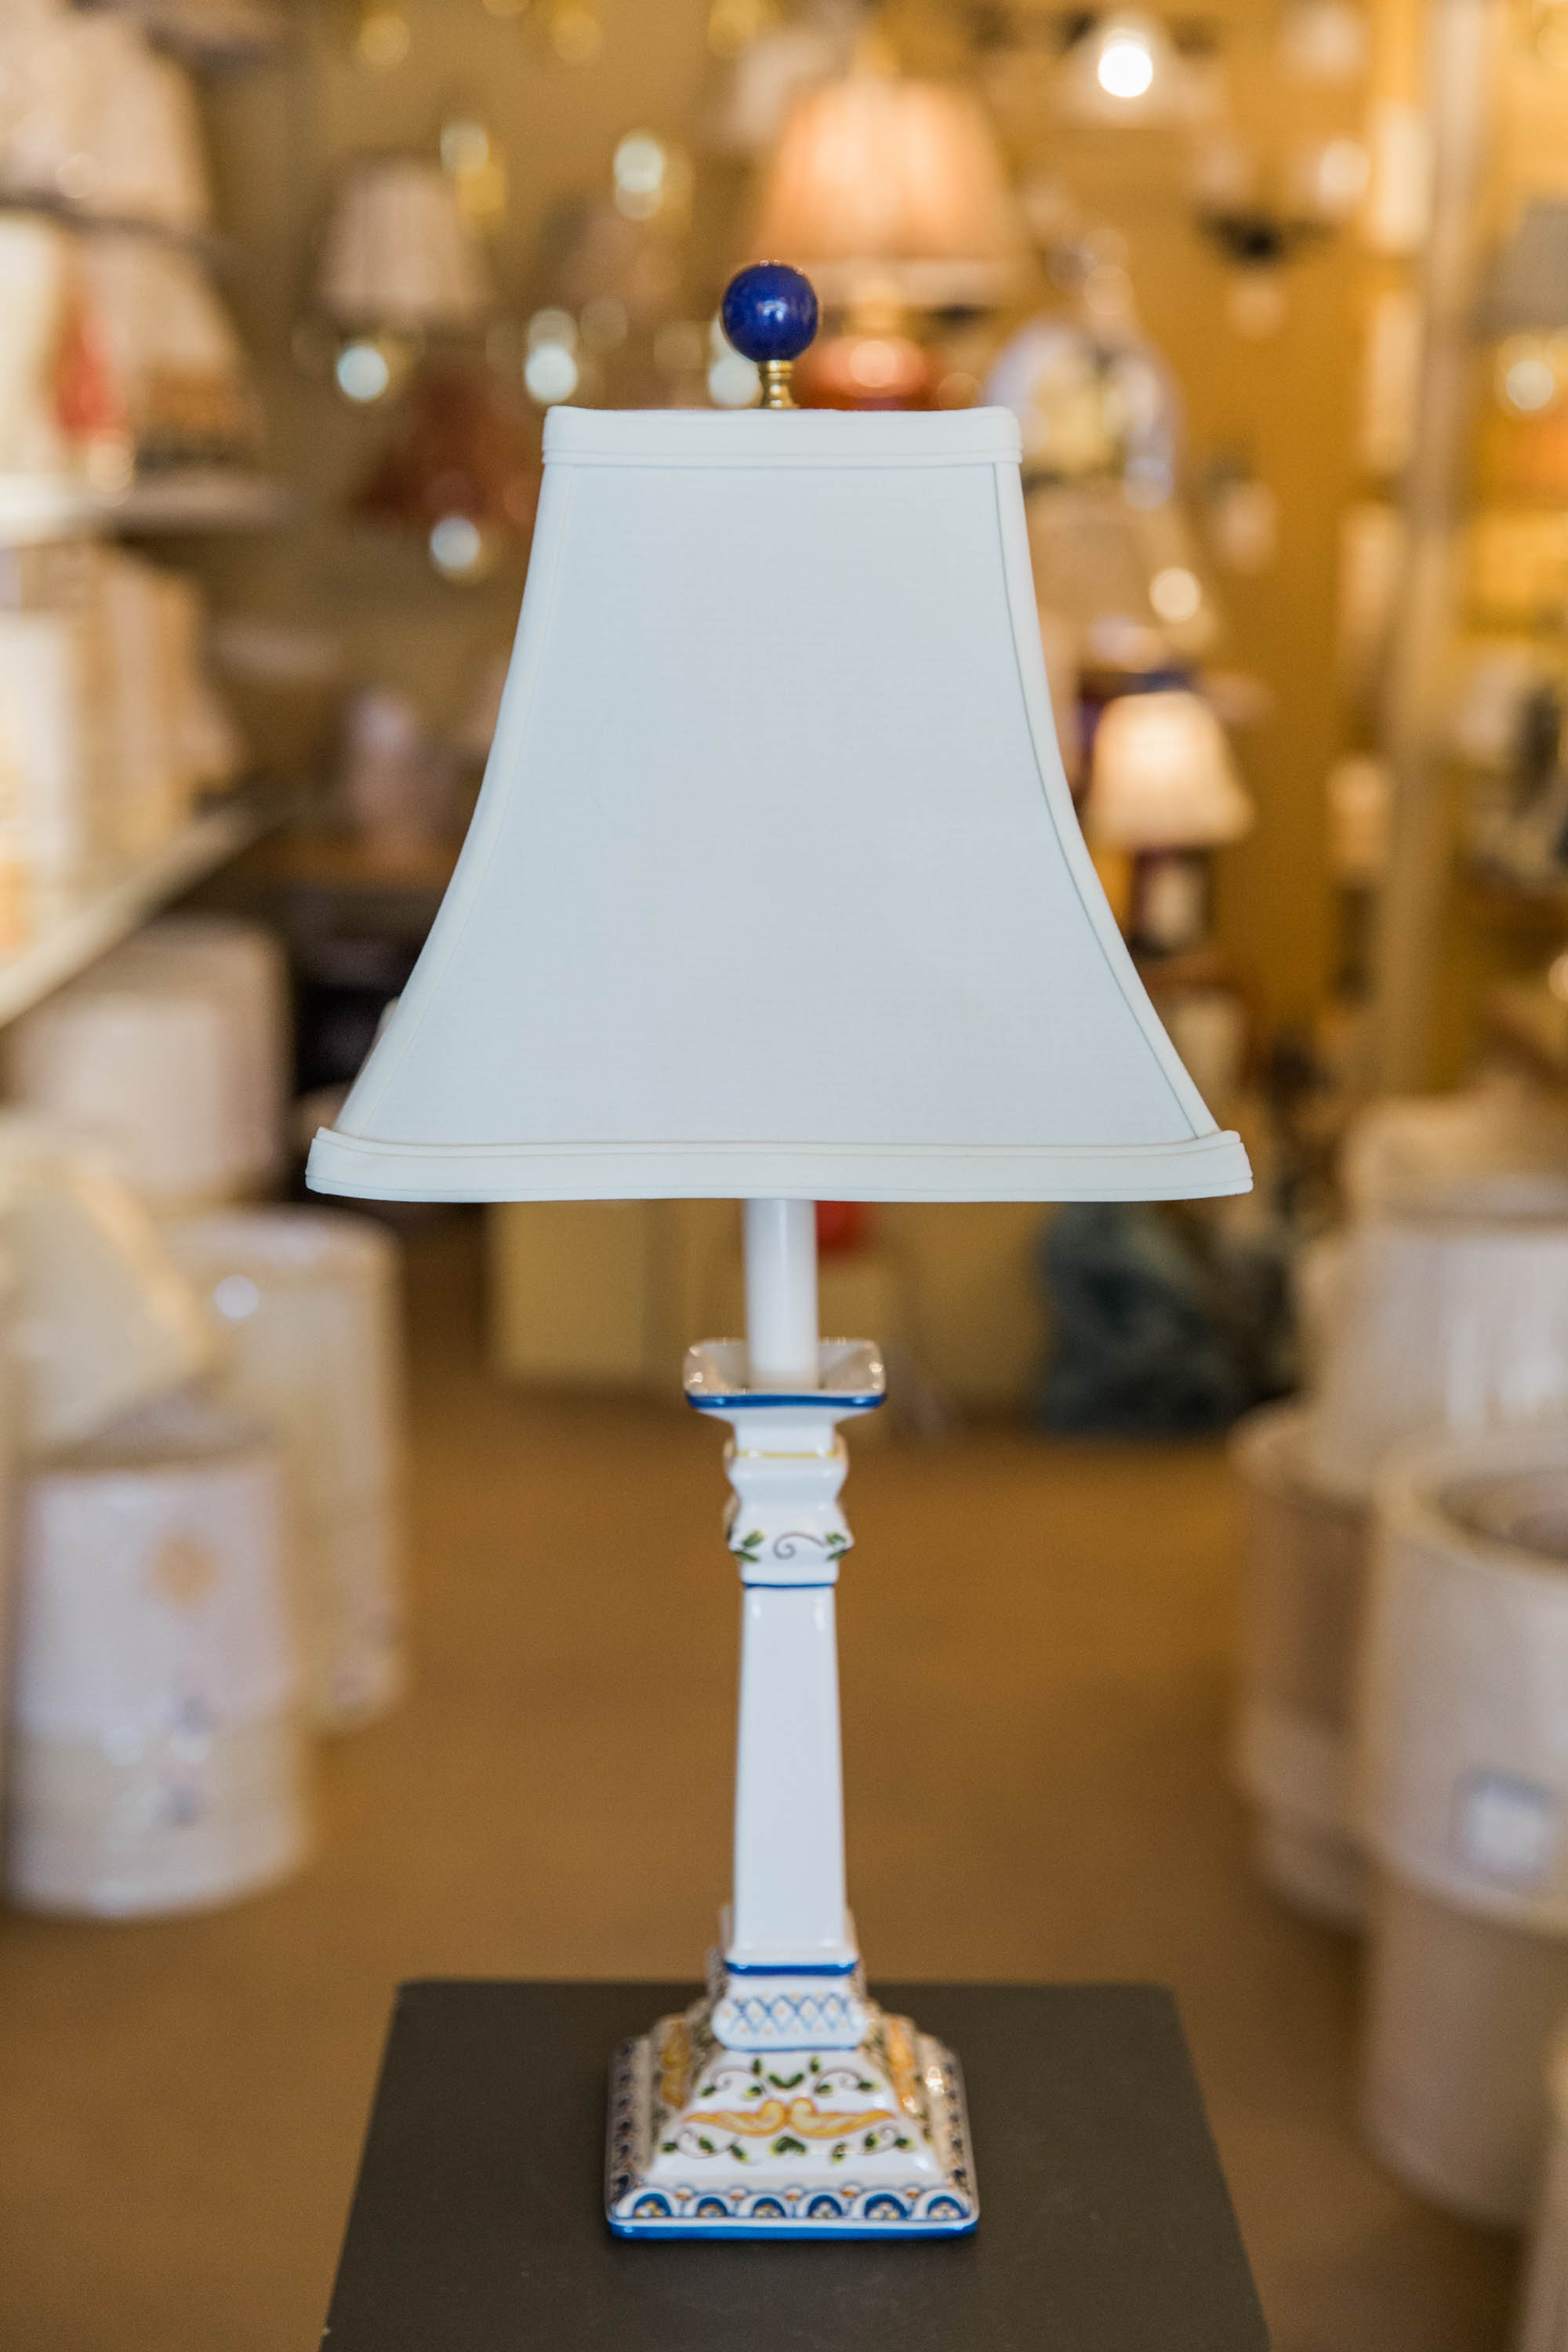 New at Our Shop: Hand-Painted Portuguese Pottery Lamps